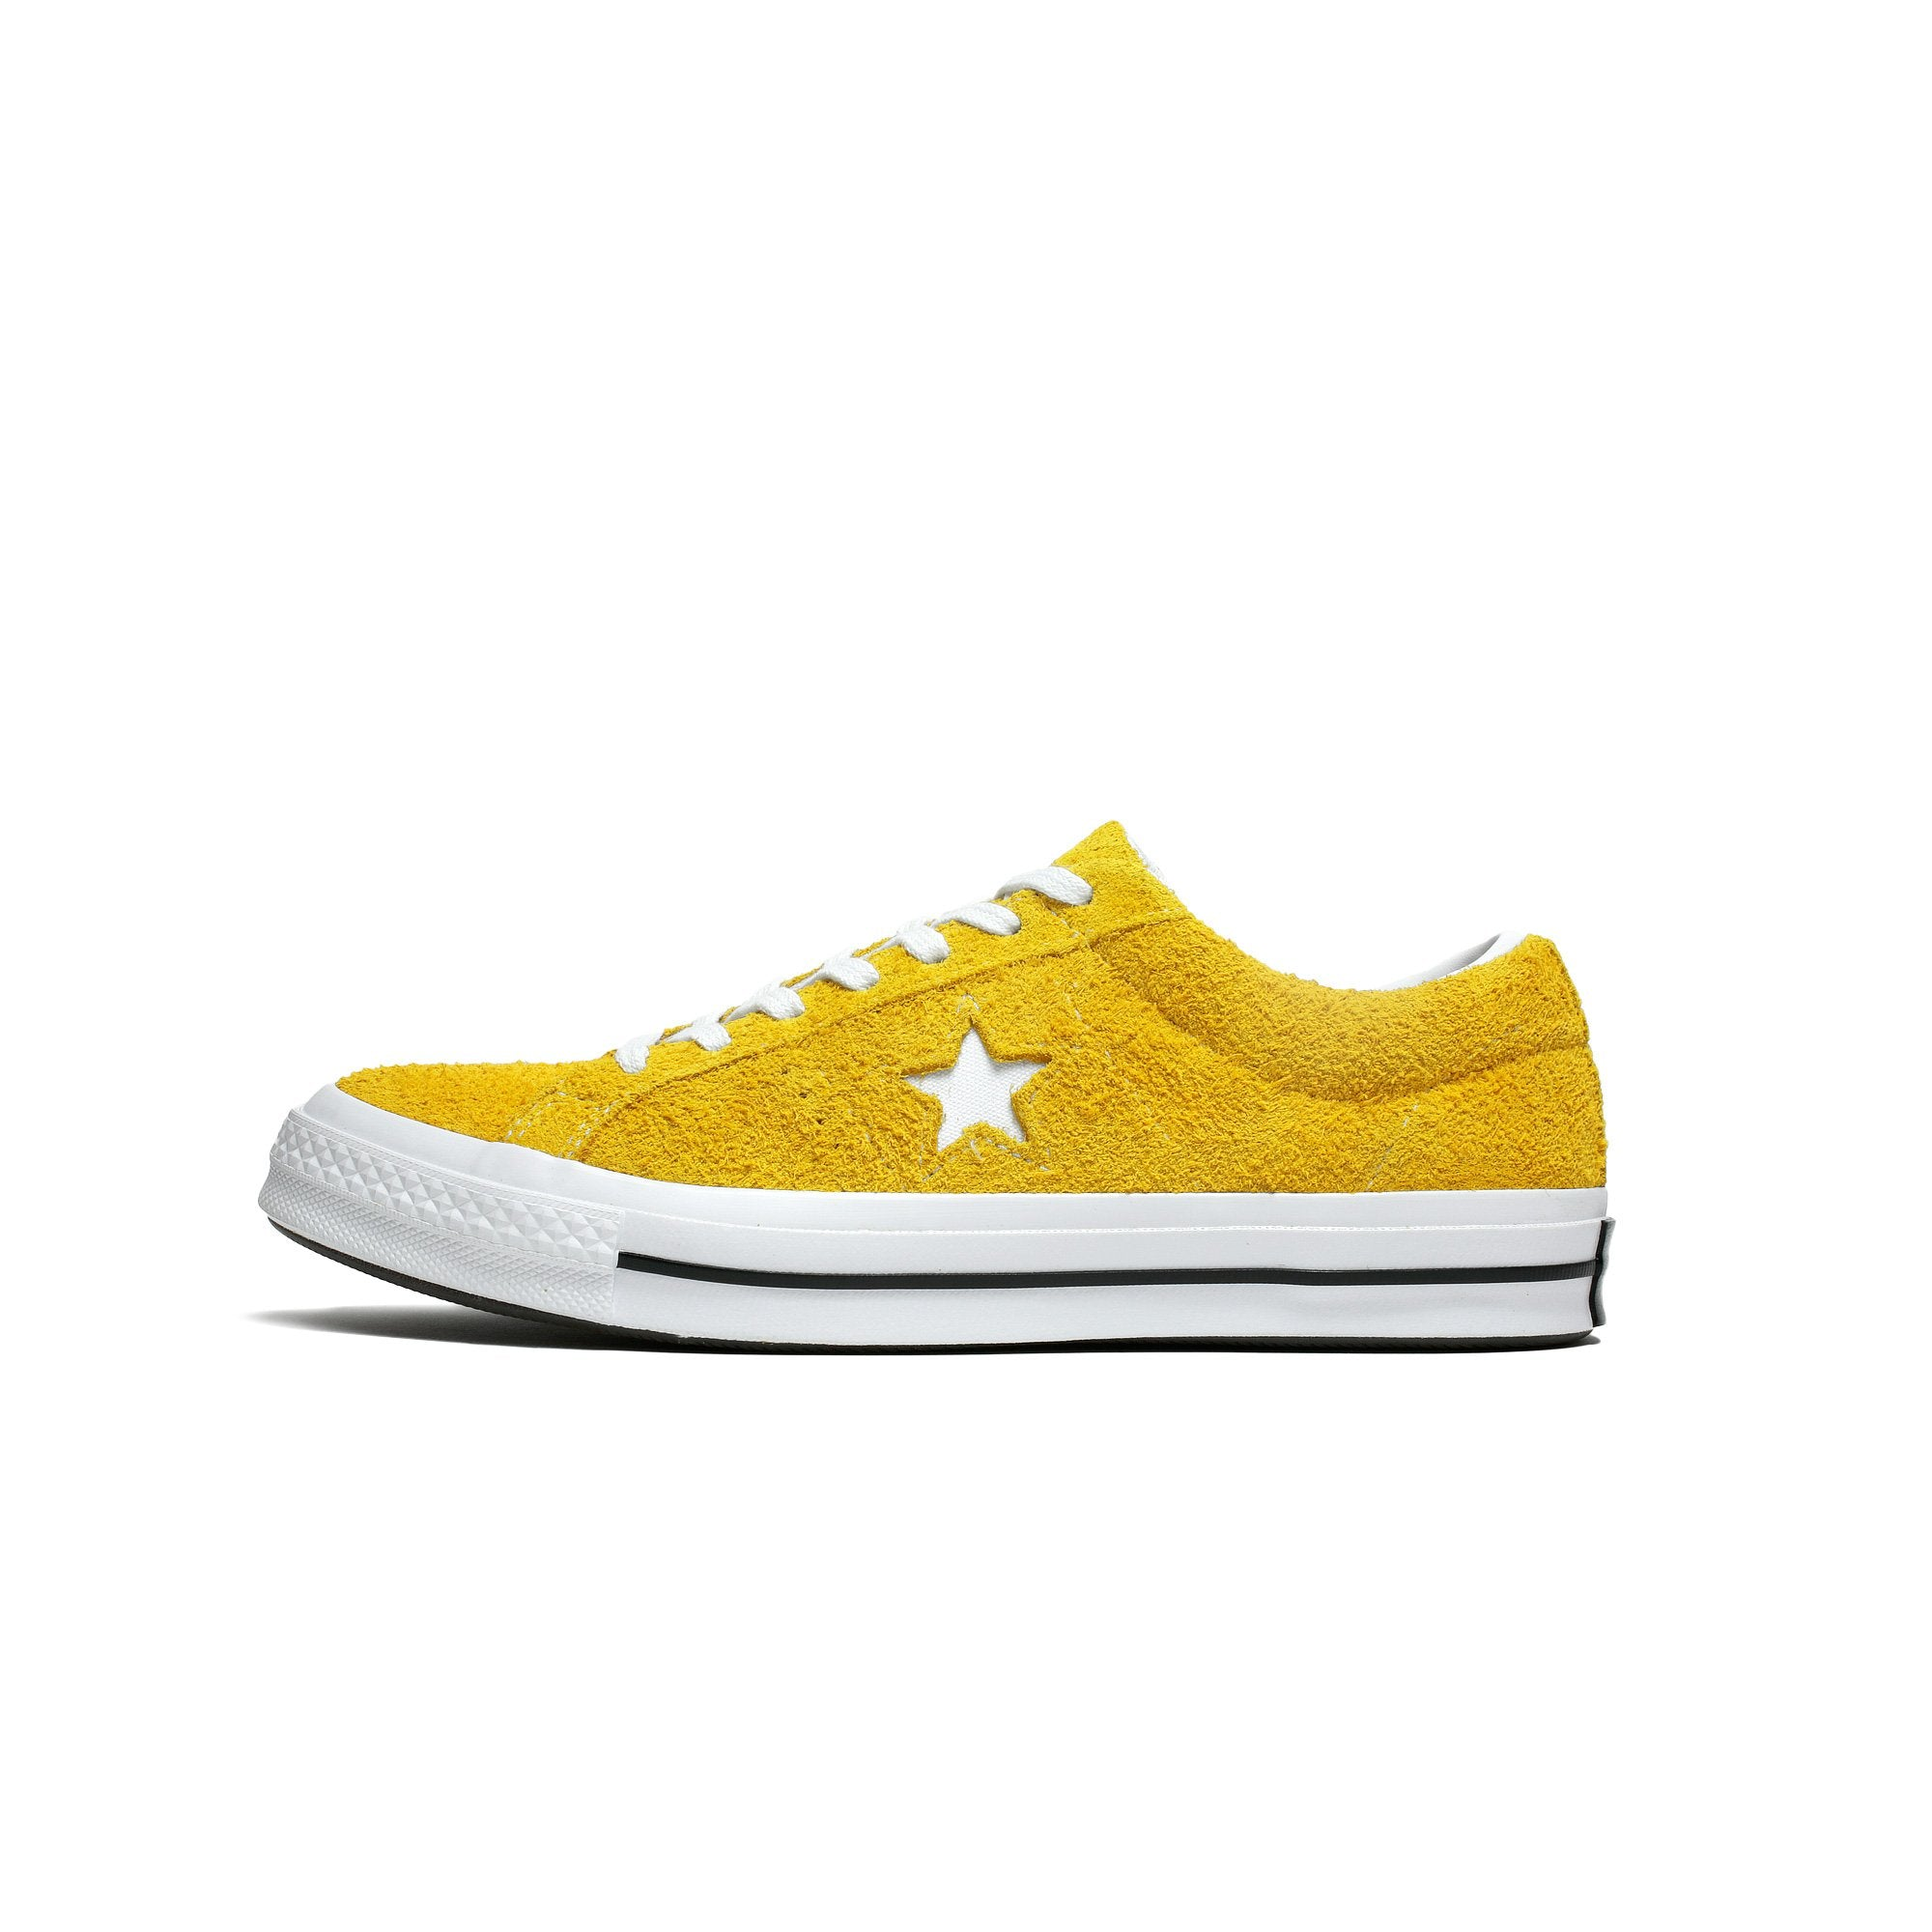 Details about Mens Converse One Star OX Mineral Yellow White Black 161241C ac3409654